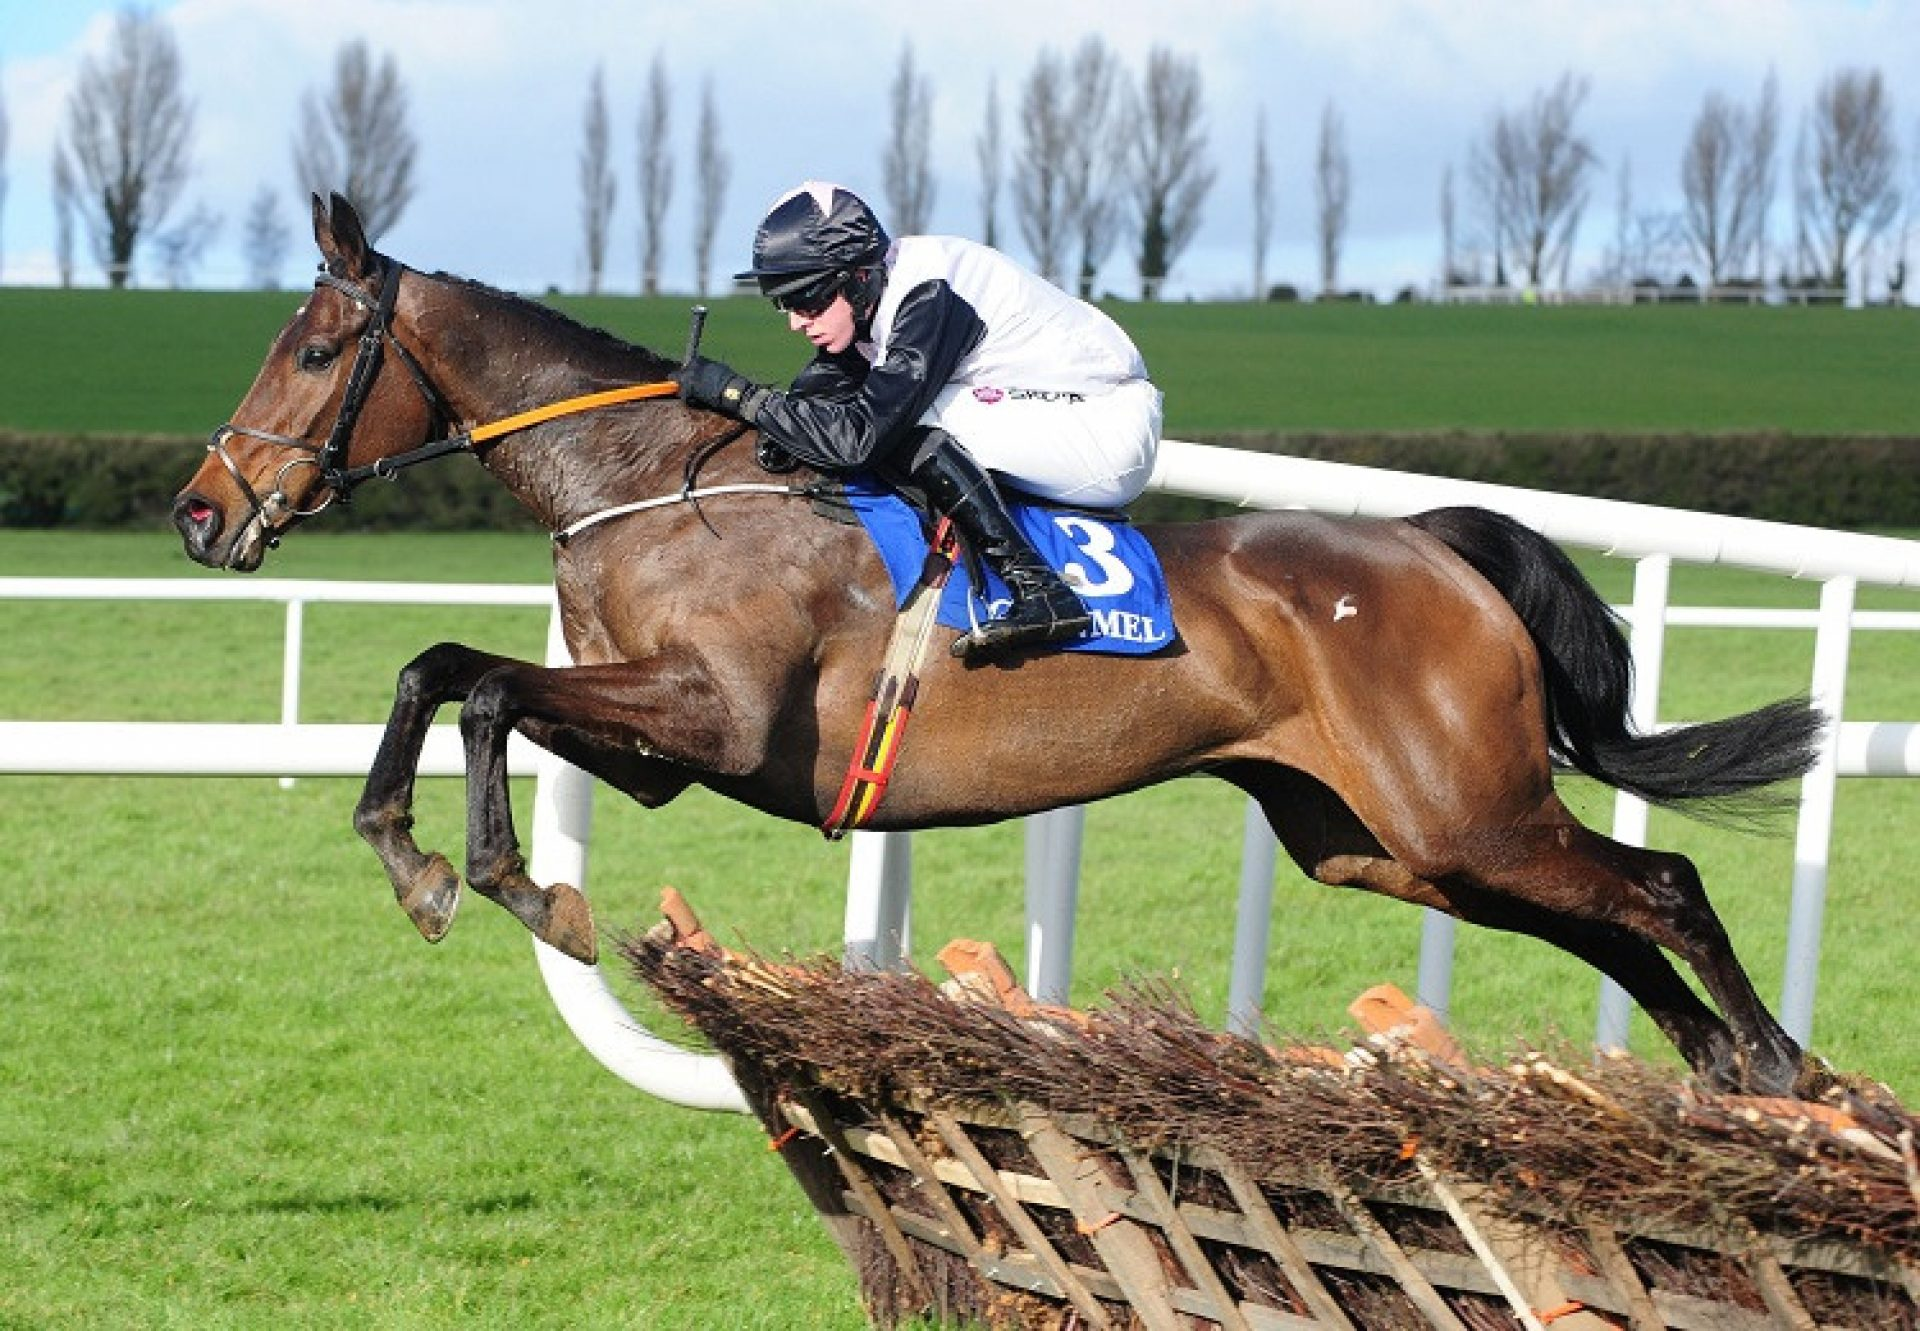 Chris's Dream (Mahler) winning the G3 Surehaul Mercedes-Benz Novice Hurdle at Clonmel